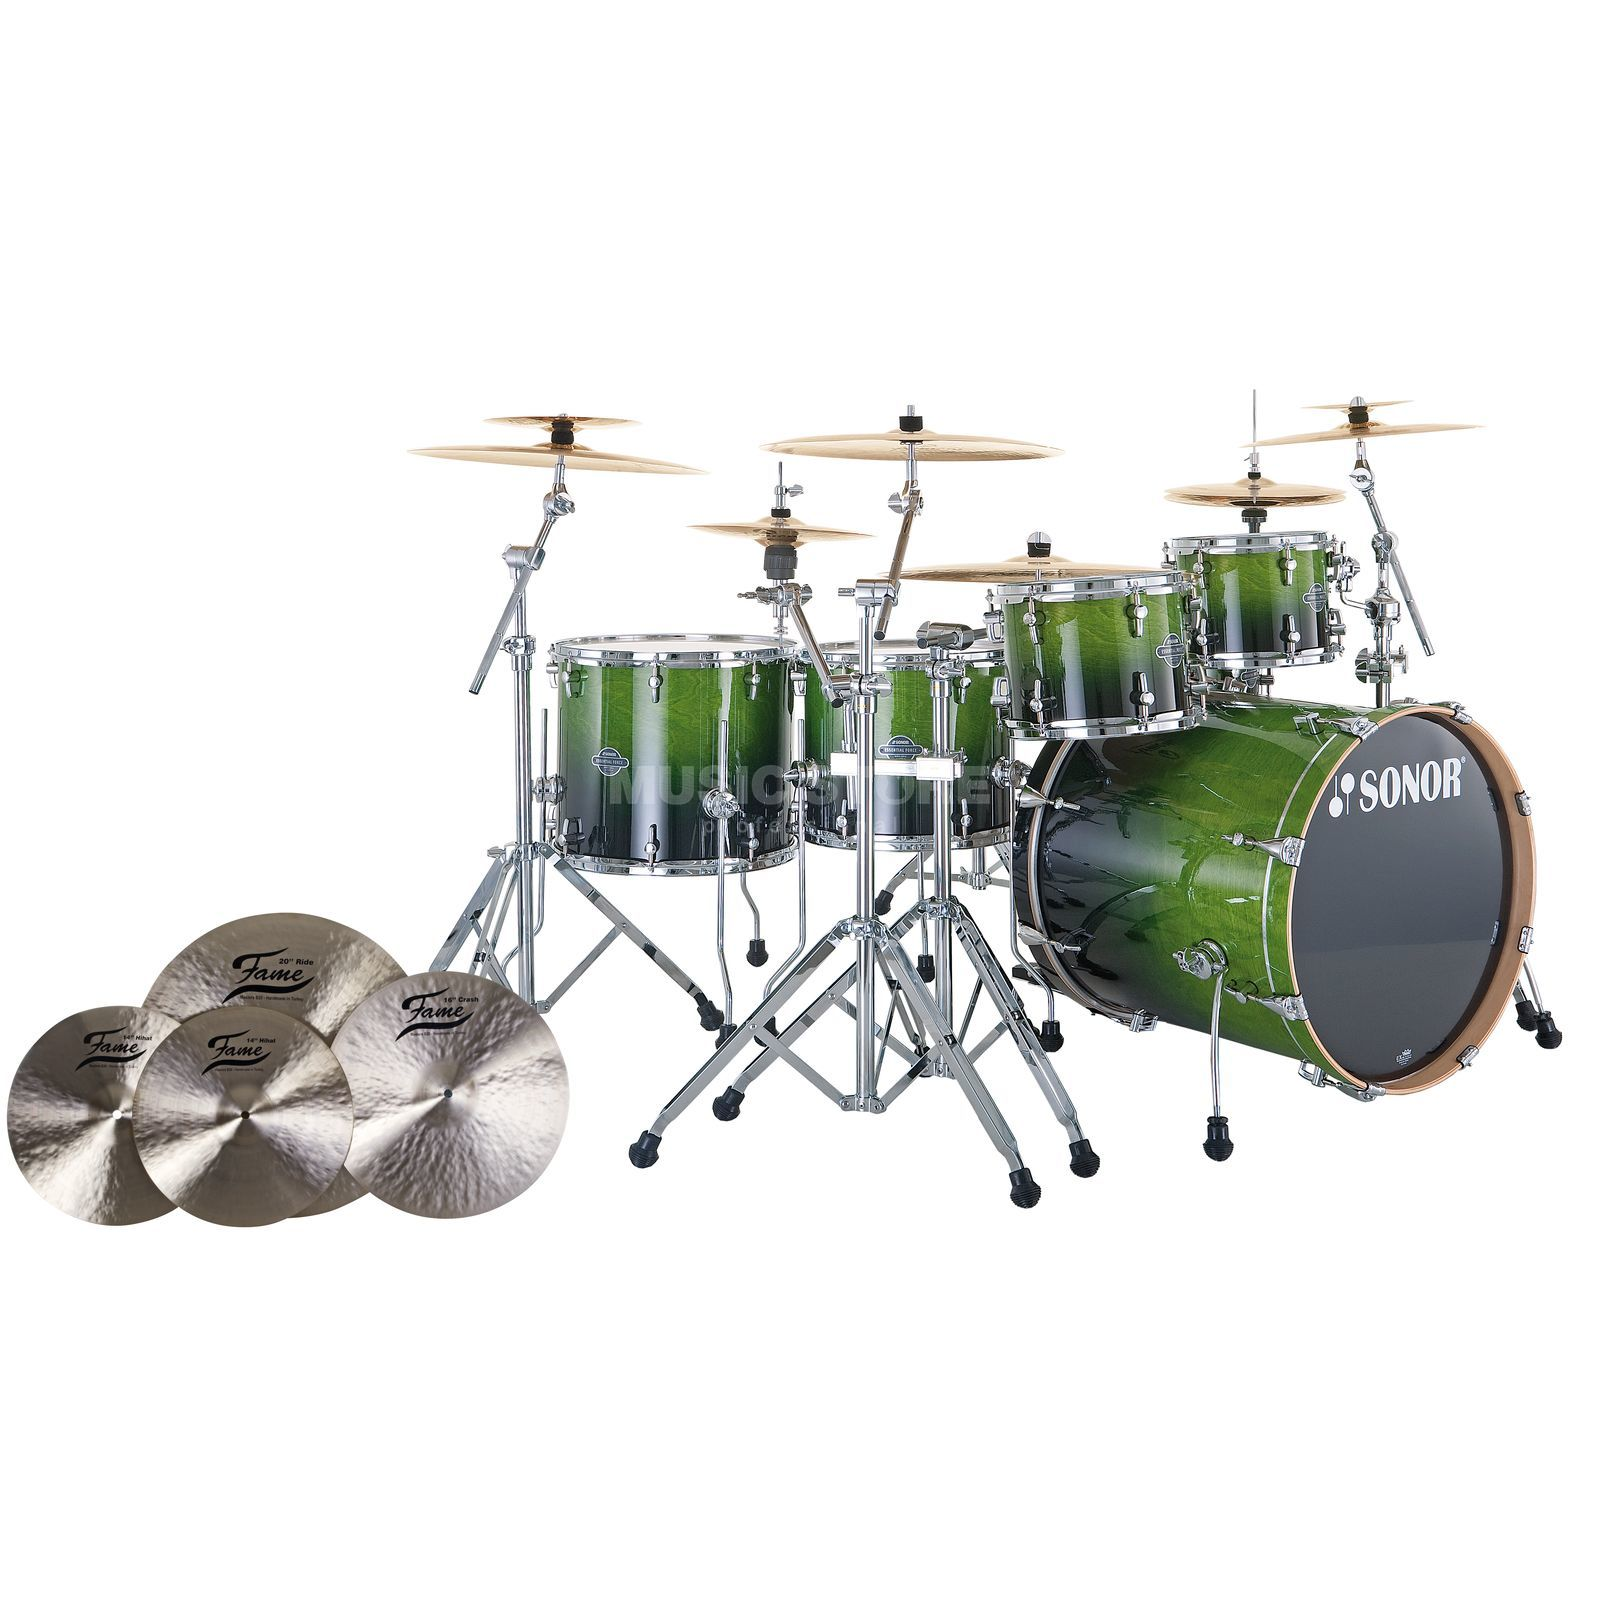 SONOR Essential Force + Cymbal - Set Produktbild